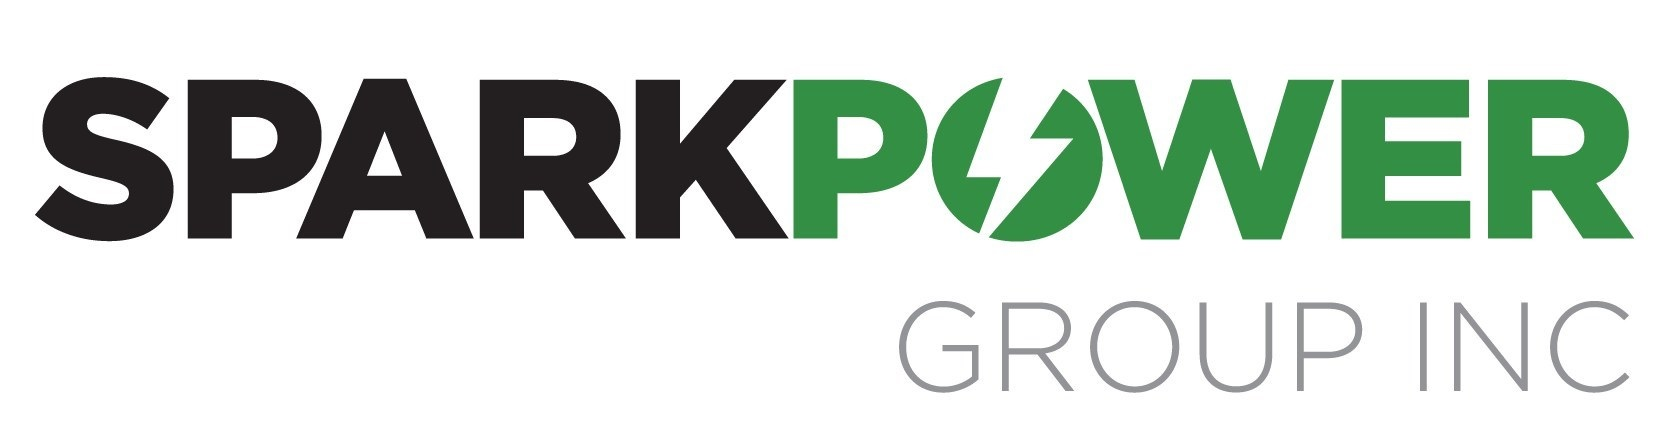 Spark Power Group Inc.